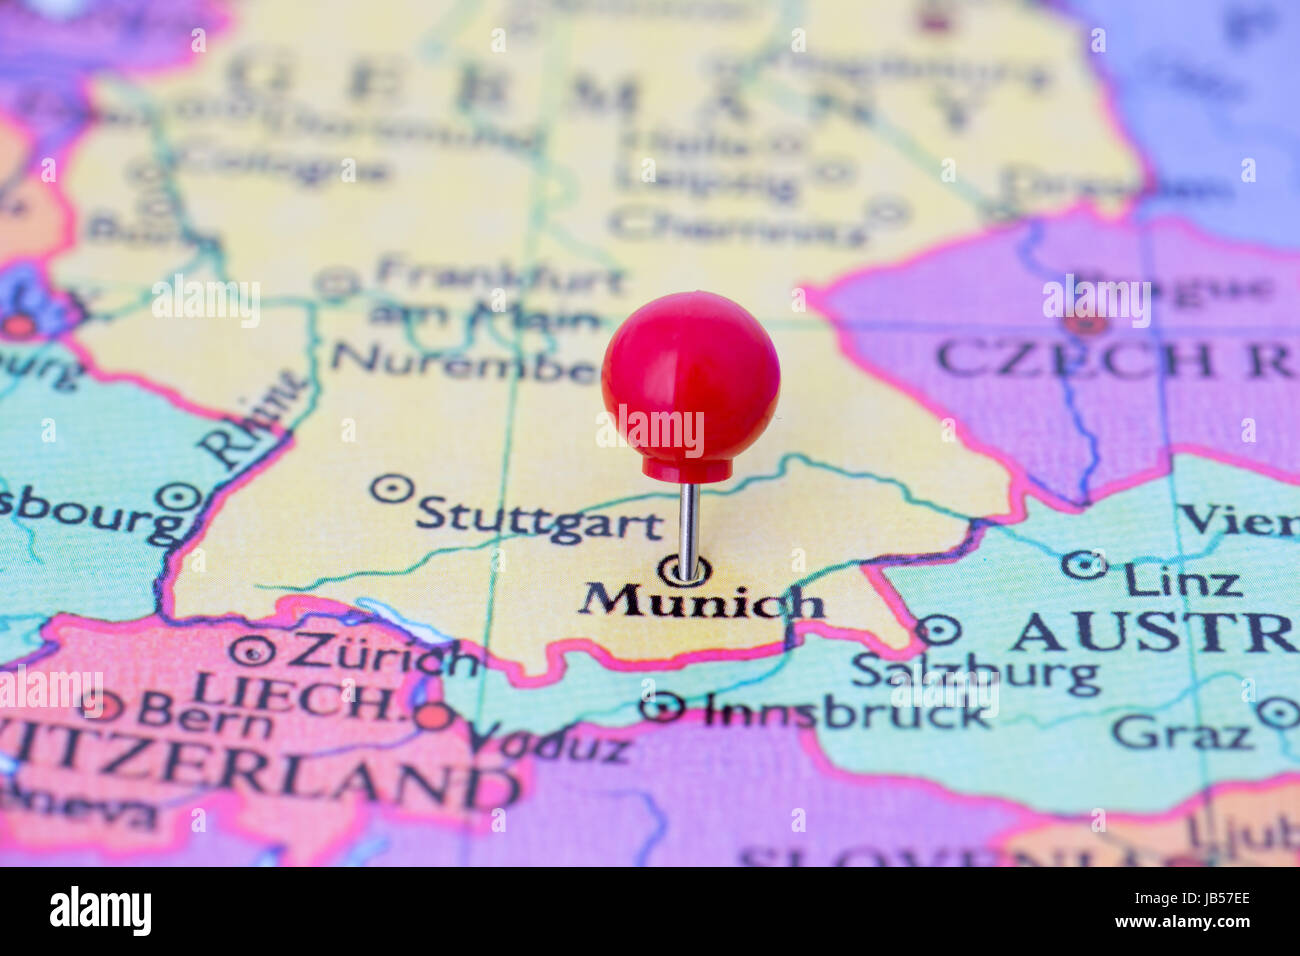 Round red thumb tack pinched through city of Munich on Germany map